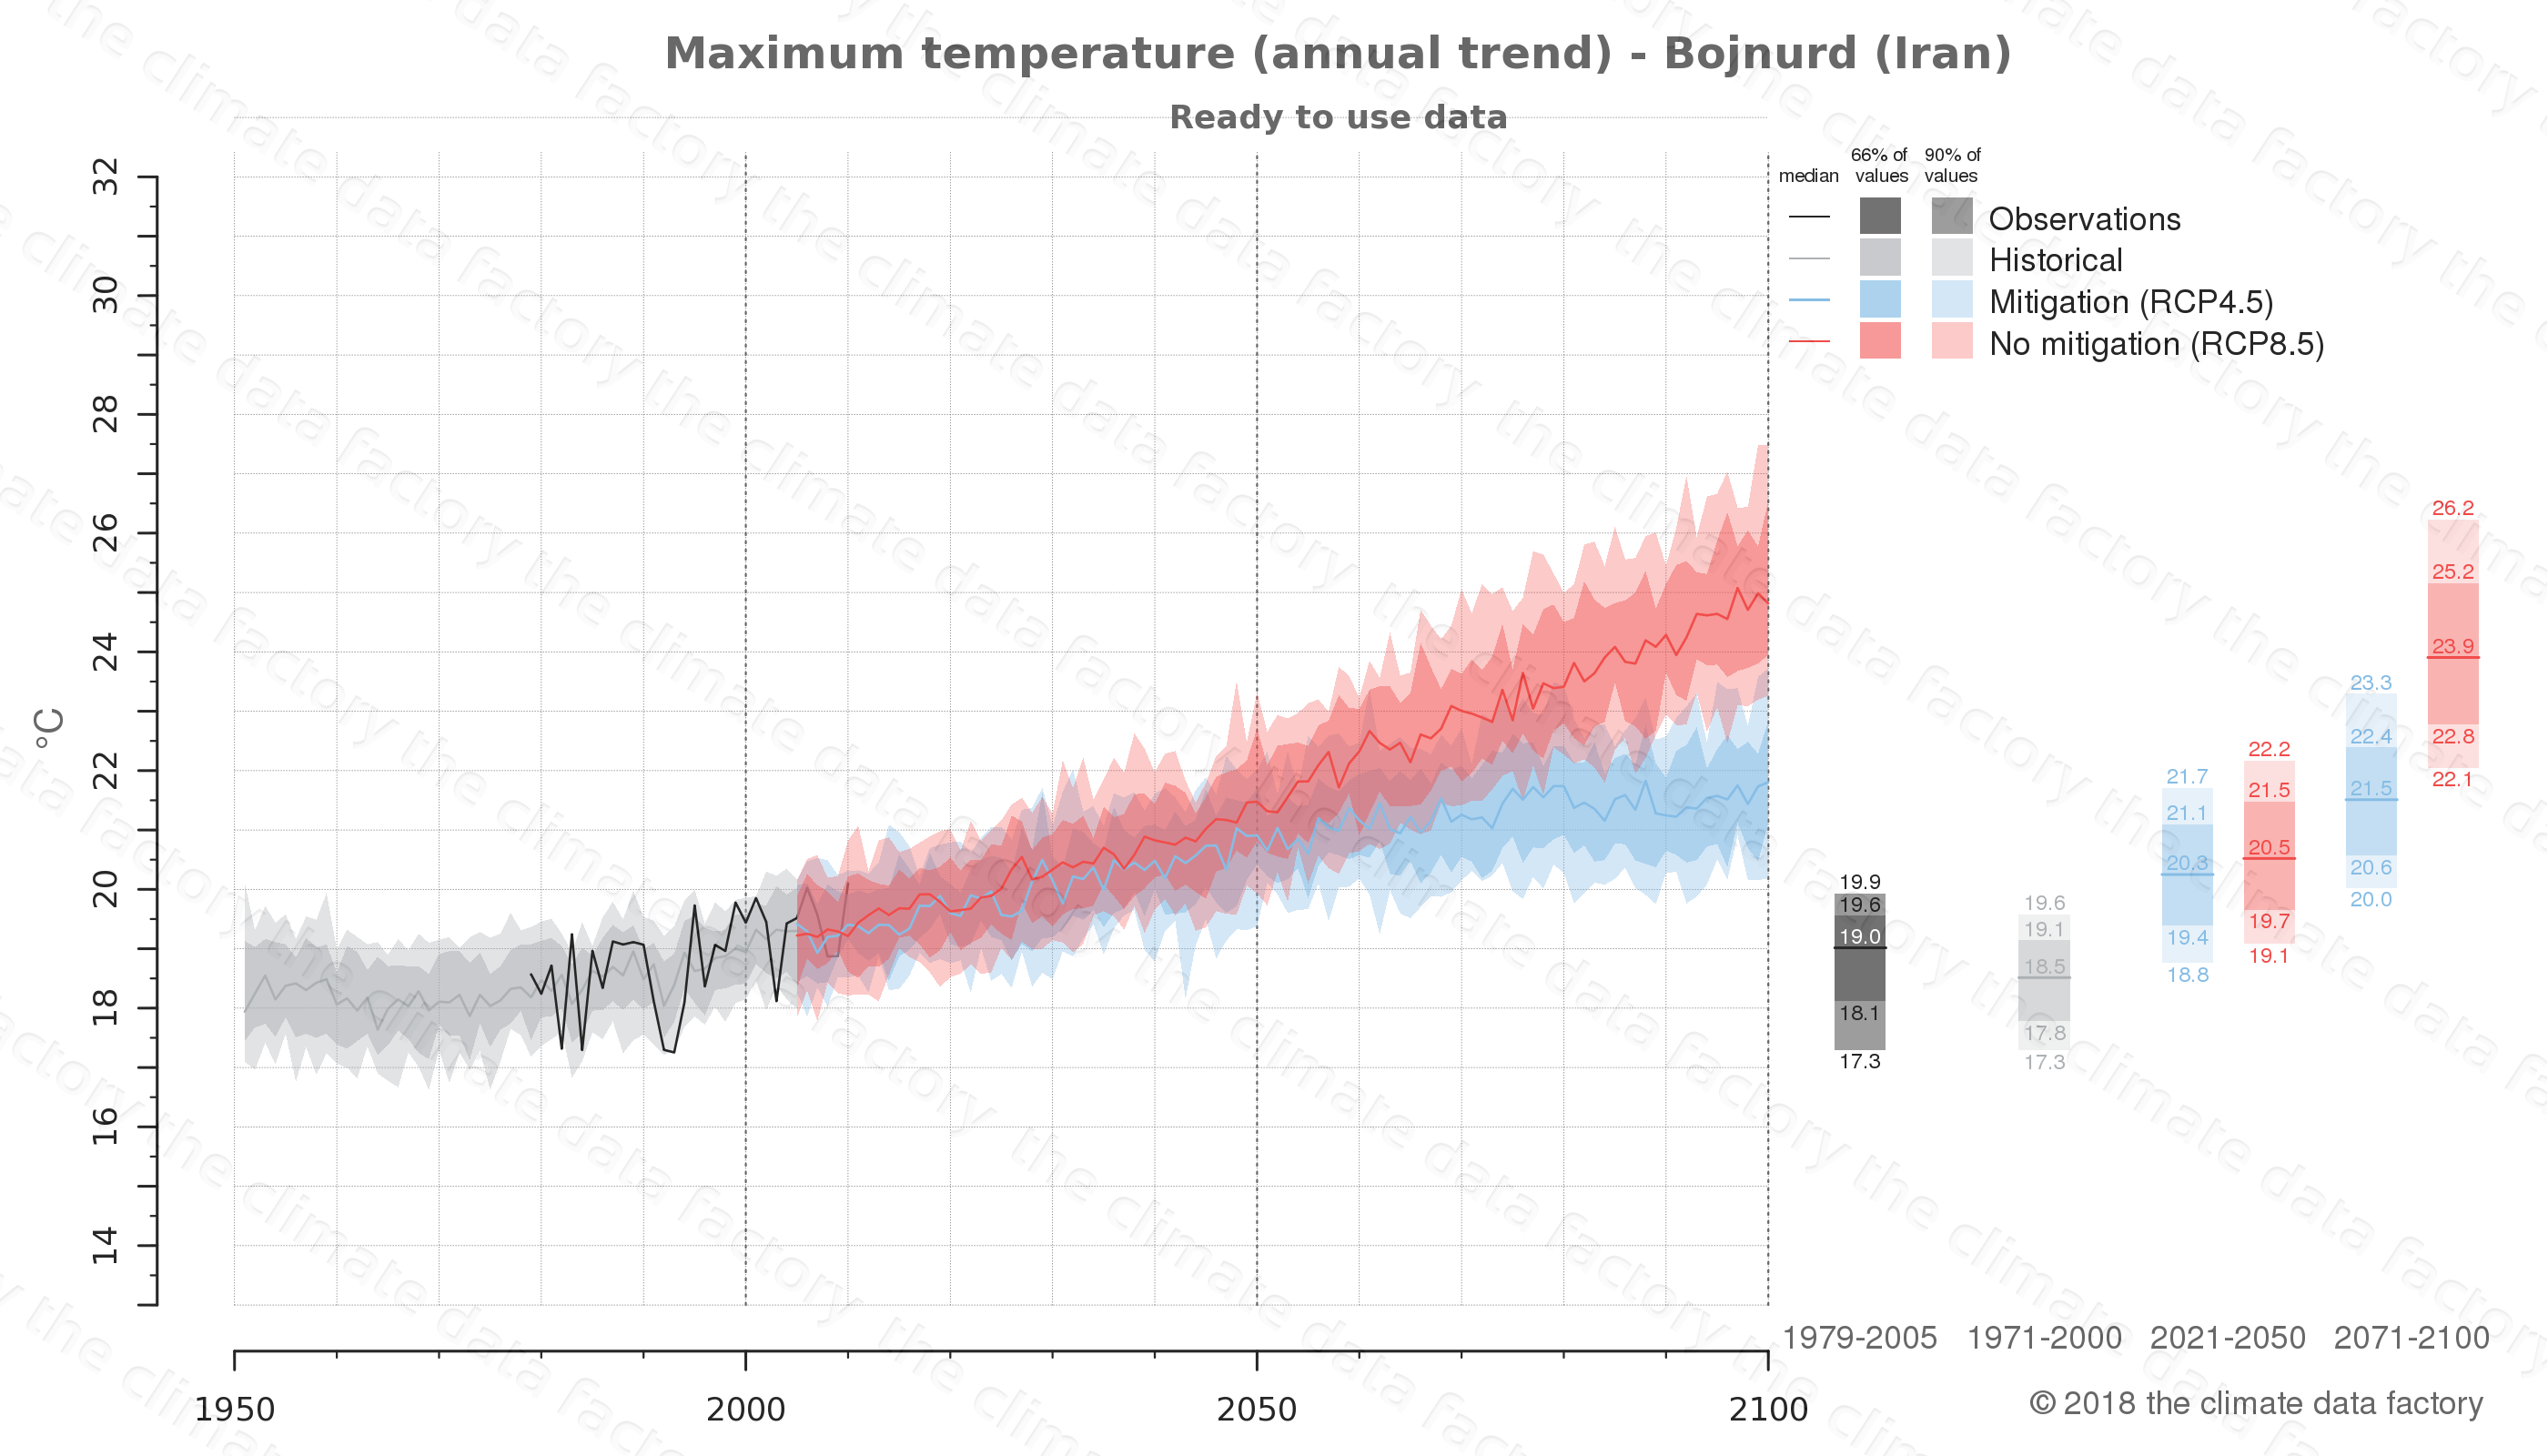 climate change data policy adaptation climate graph city data maximum-temperature bojnurd iran